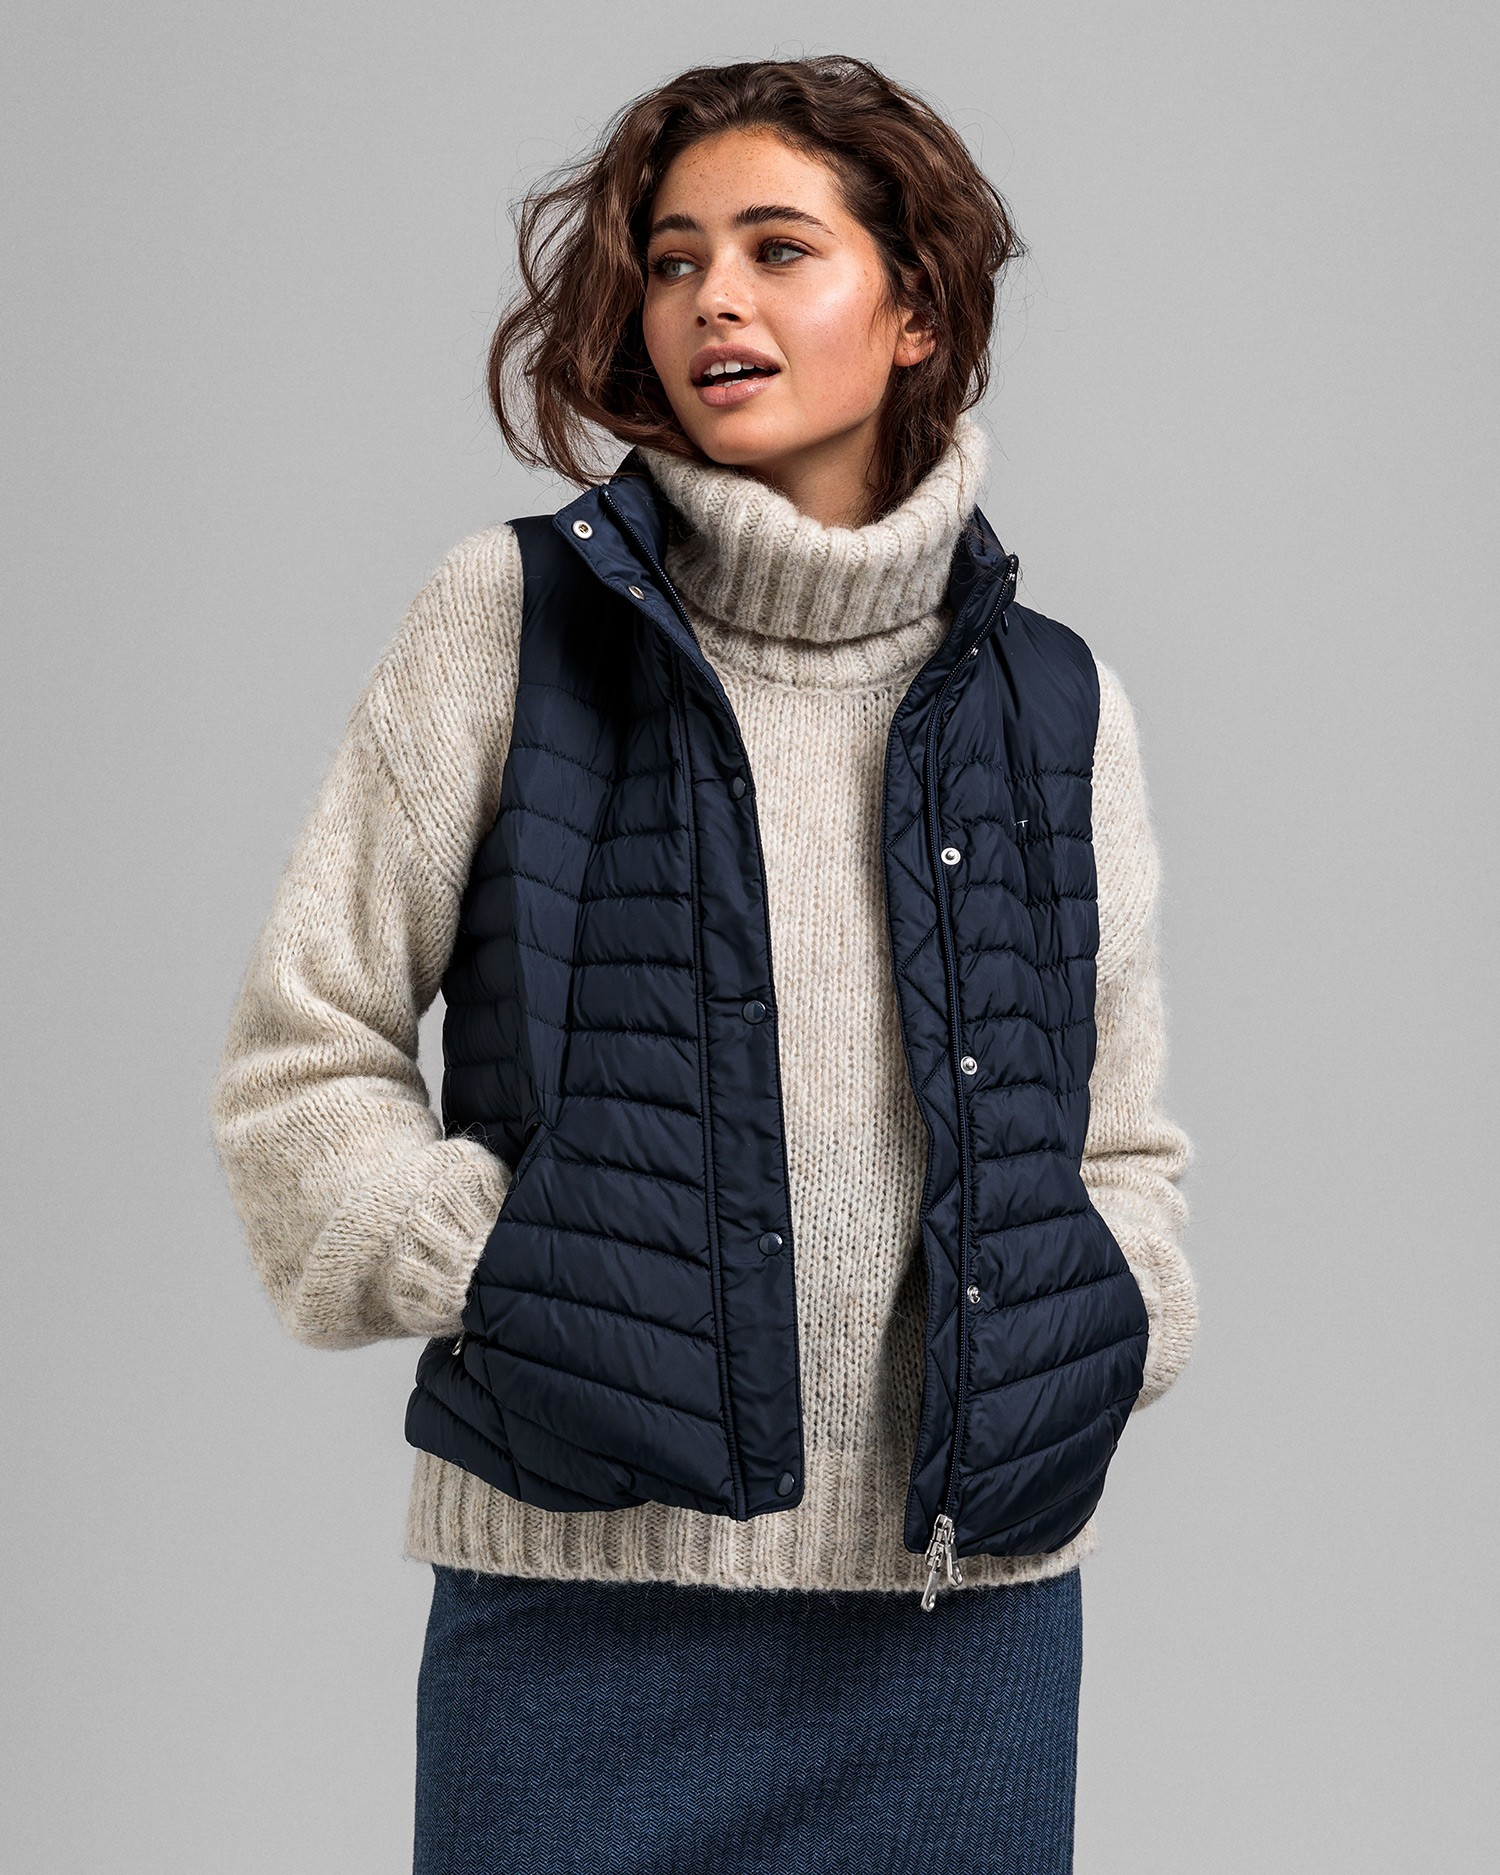 GANT Women's Light Down Gilet - 4700130